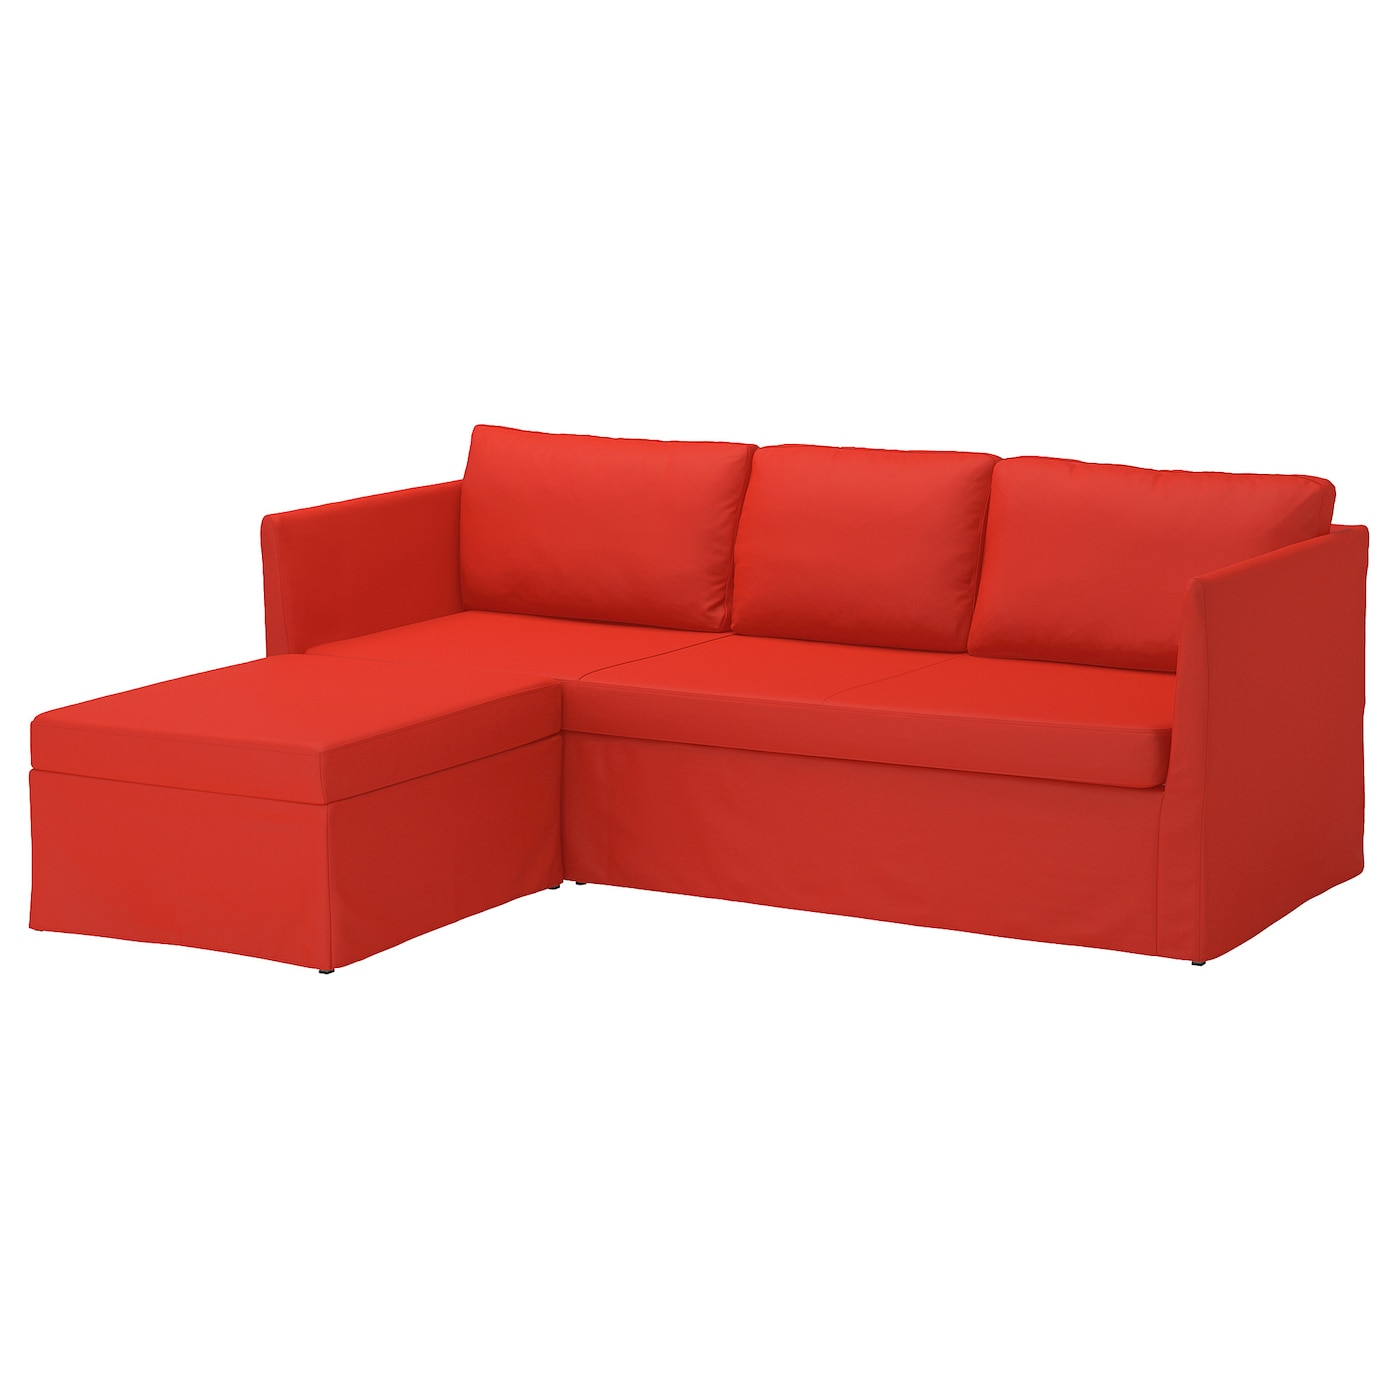 IKEA BRÅTHULT corner sofa, 3-seat You sit comfortably thanks to the resilient foam and springy seat.